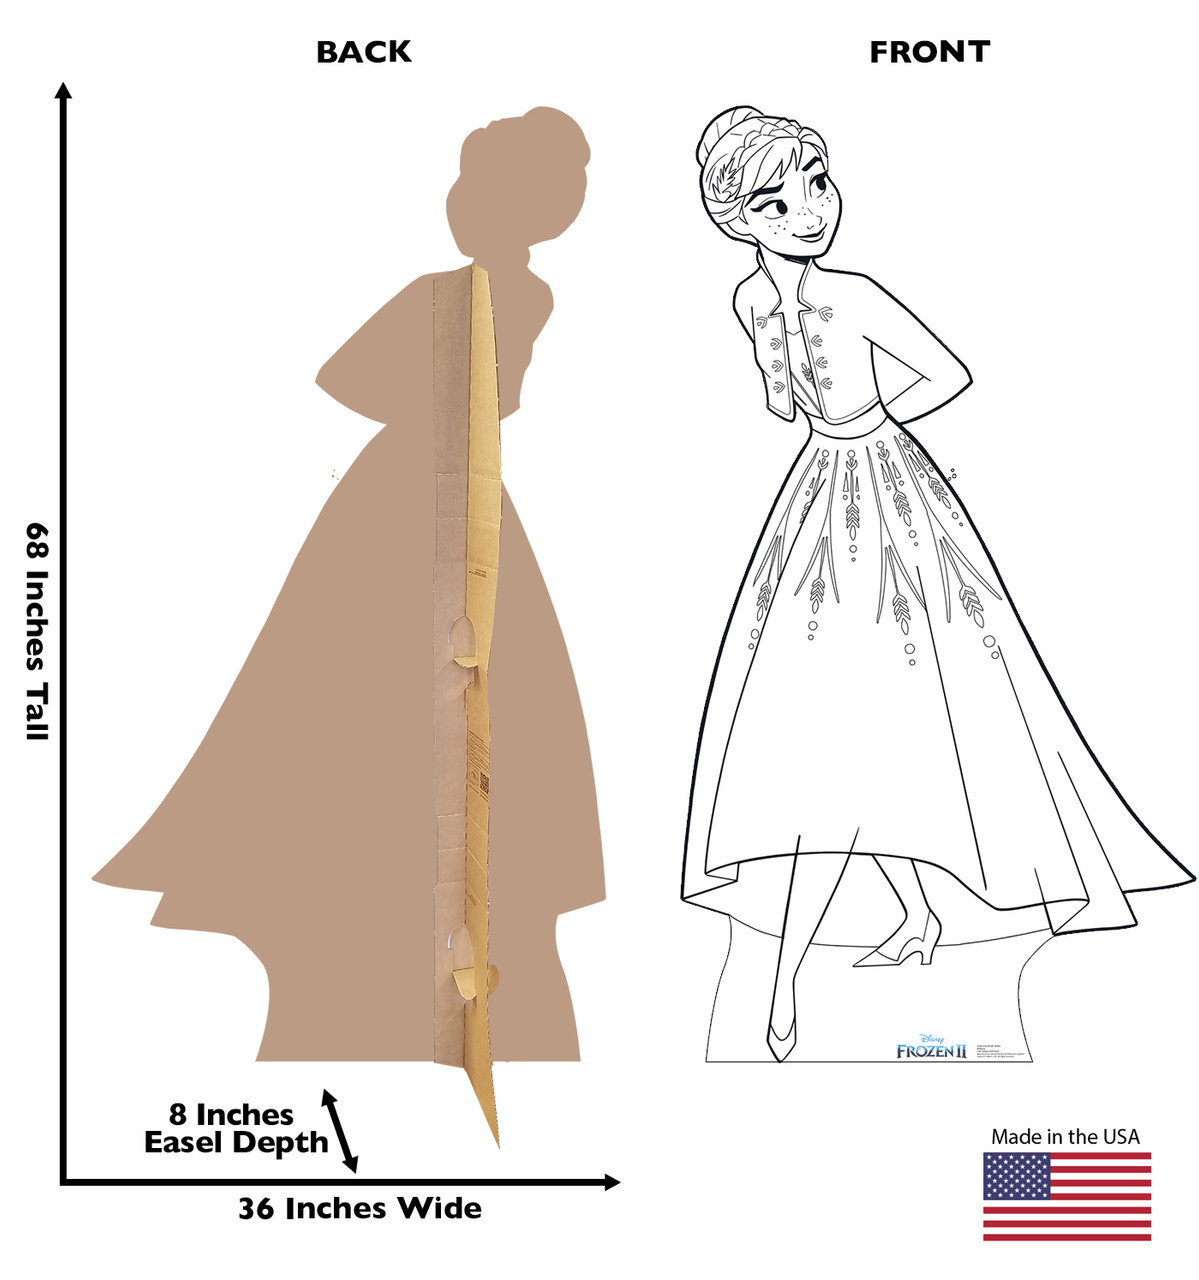 Life-size Color Me Anna Standee with front and back dimensions.